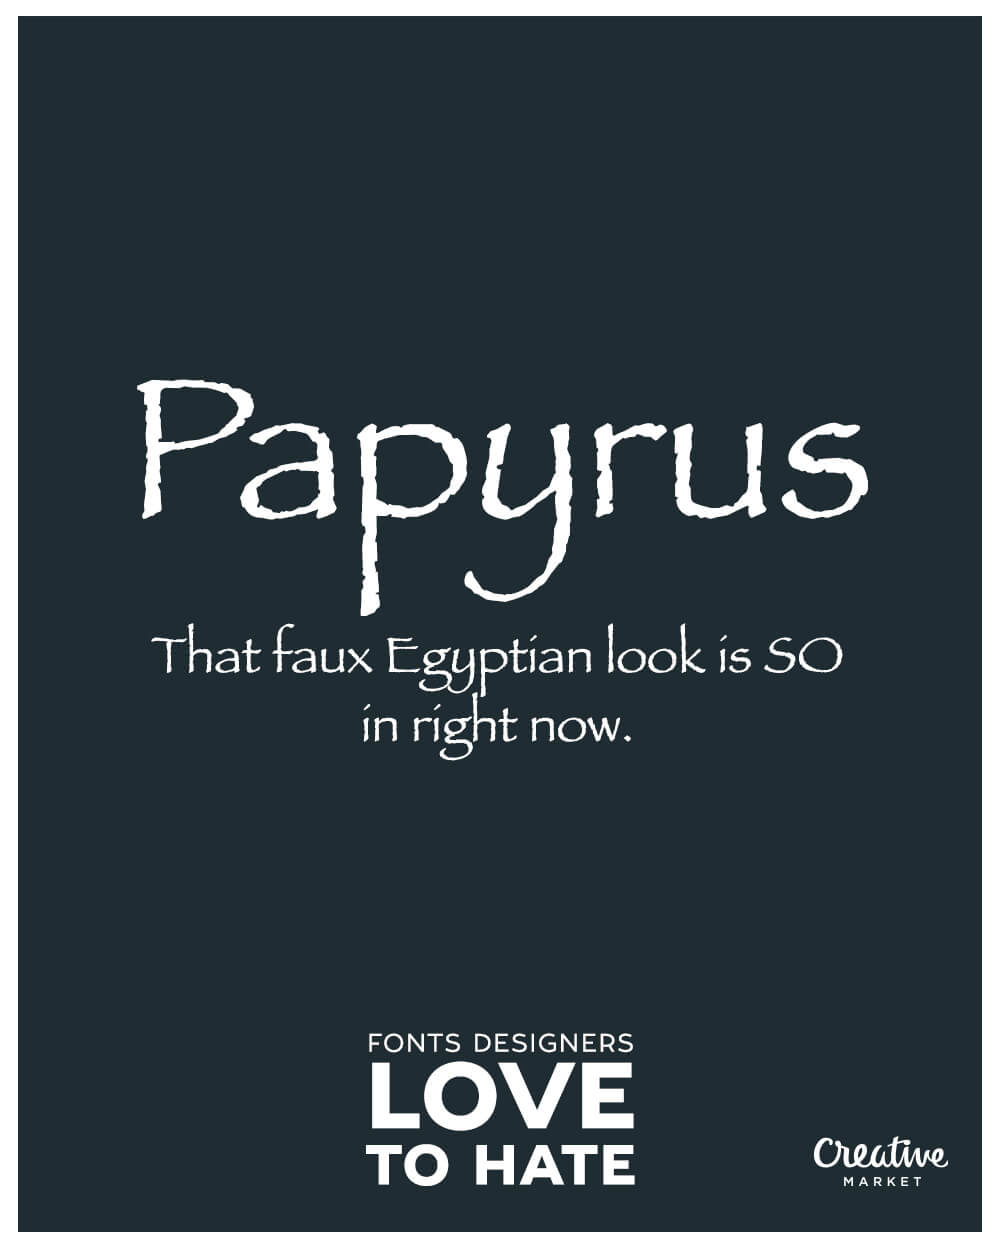 10 fonts designers love to hate: Papyrus